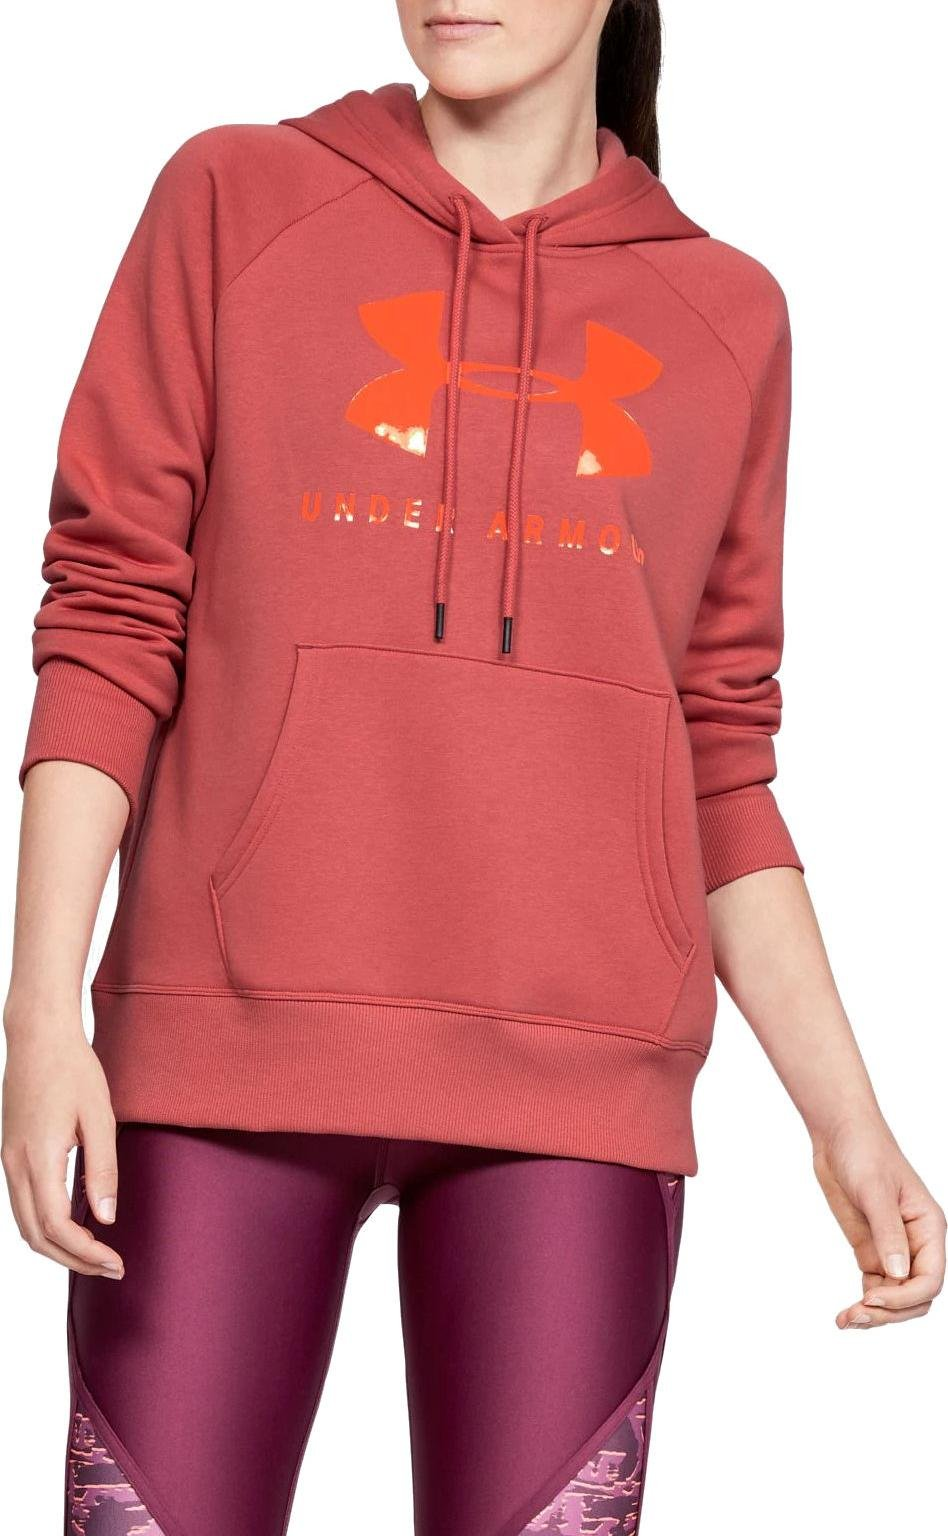 Hooded sweatshirt Under Armour RIVAL FLEECE SPORTSTYLE GRAPHIC HOODIE